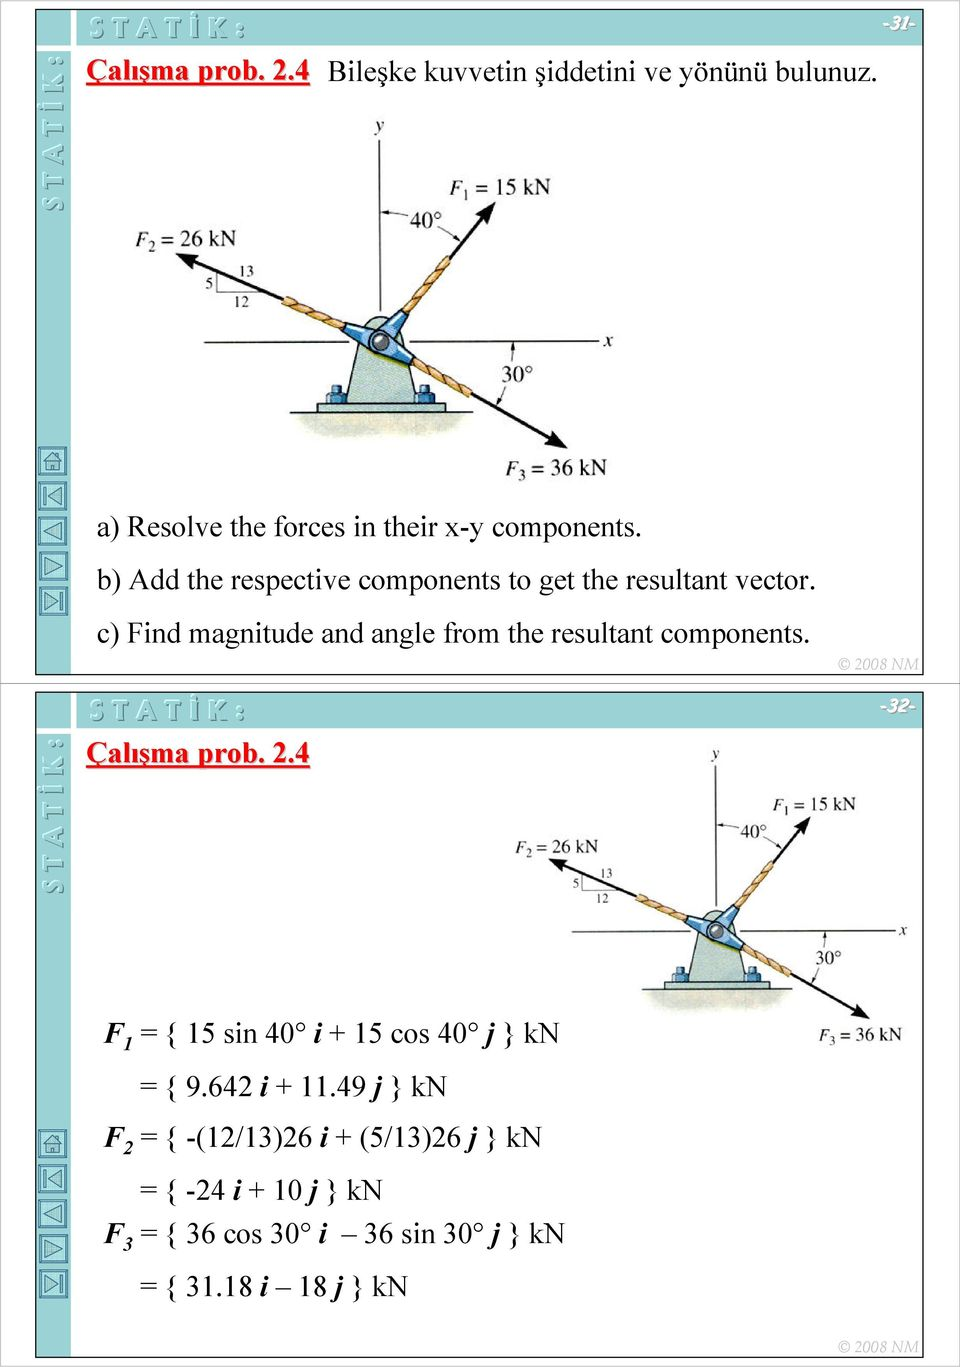 c) ind magnitude and angle frm the resultant cmpnents. Çalışma prb.. 2.